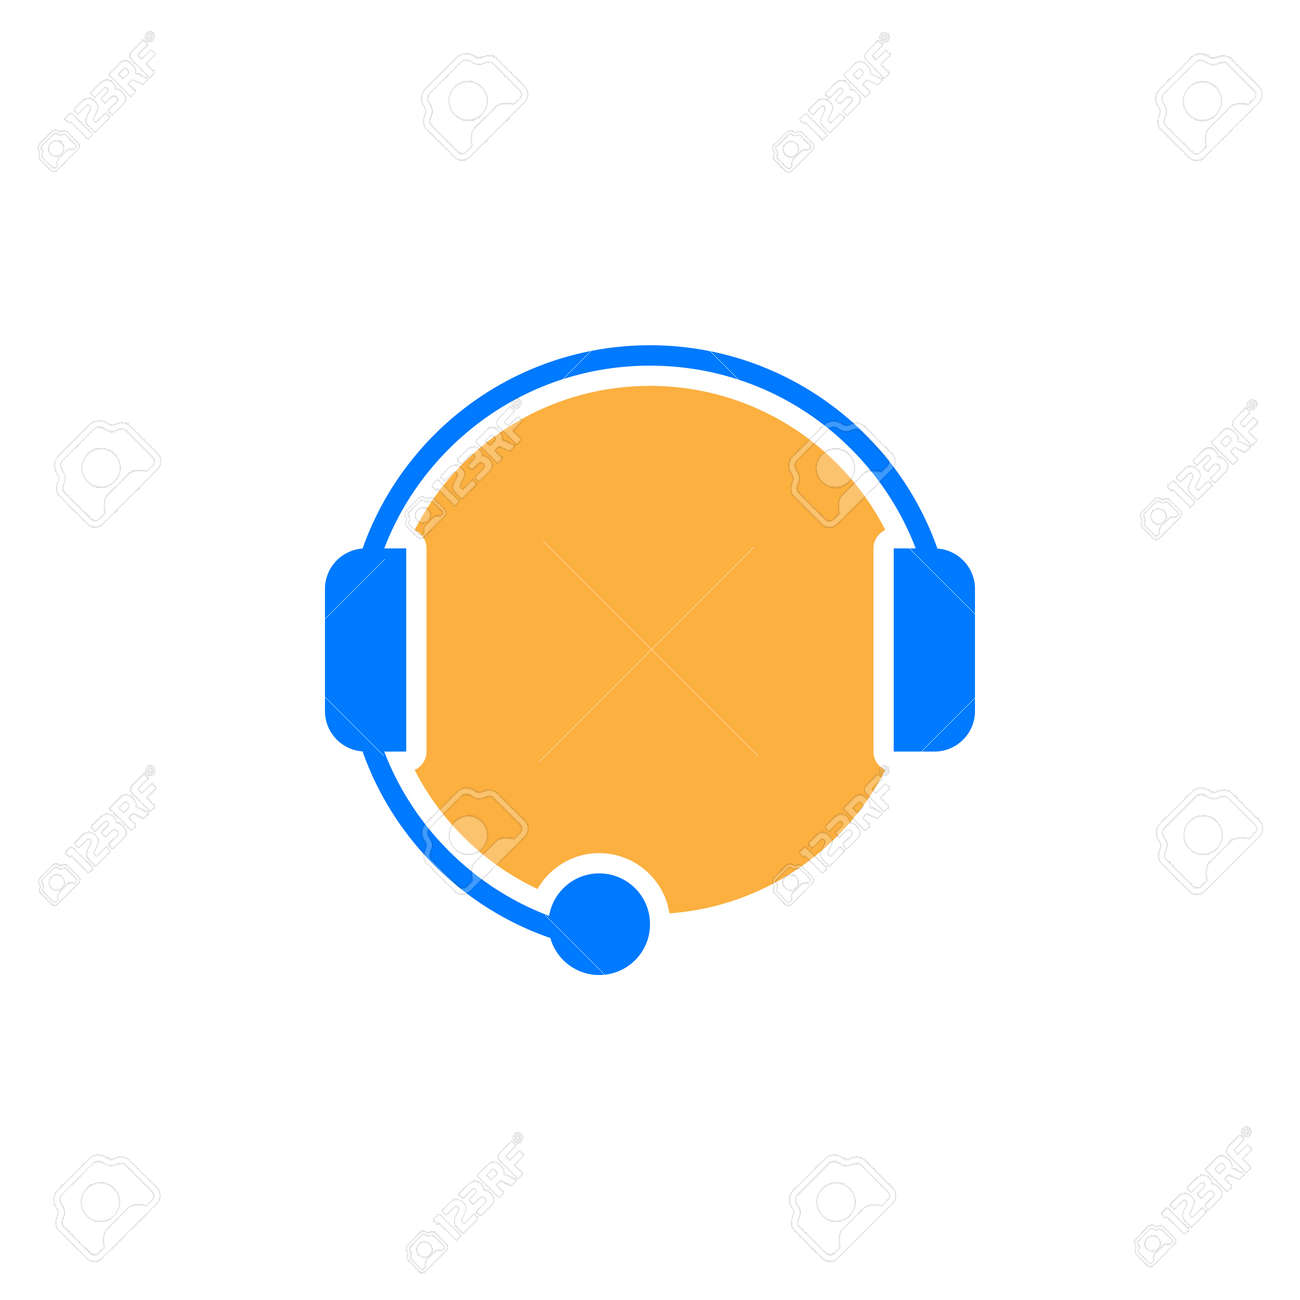 customer support icon vector call center solid logo illustration royalty free cliparts vectors and stock illustration image 77920670 customer support icon vector call center solid logo illustration